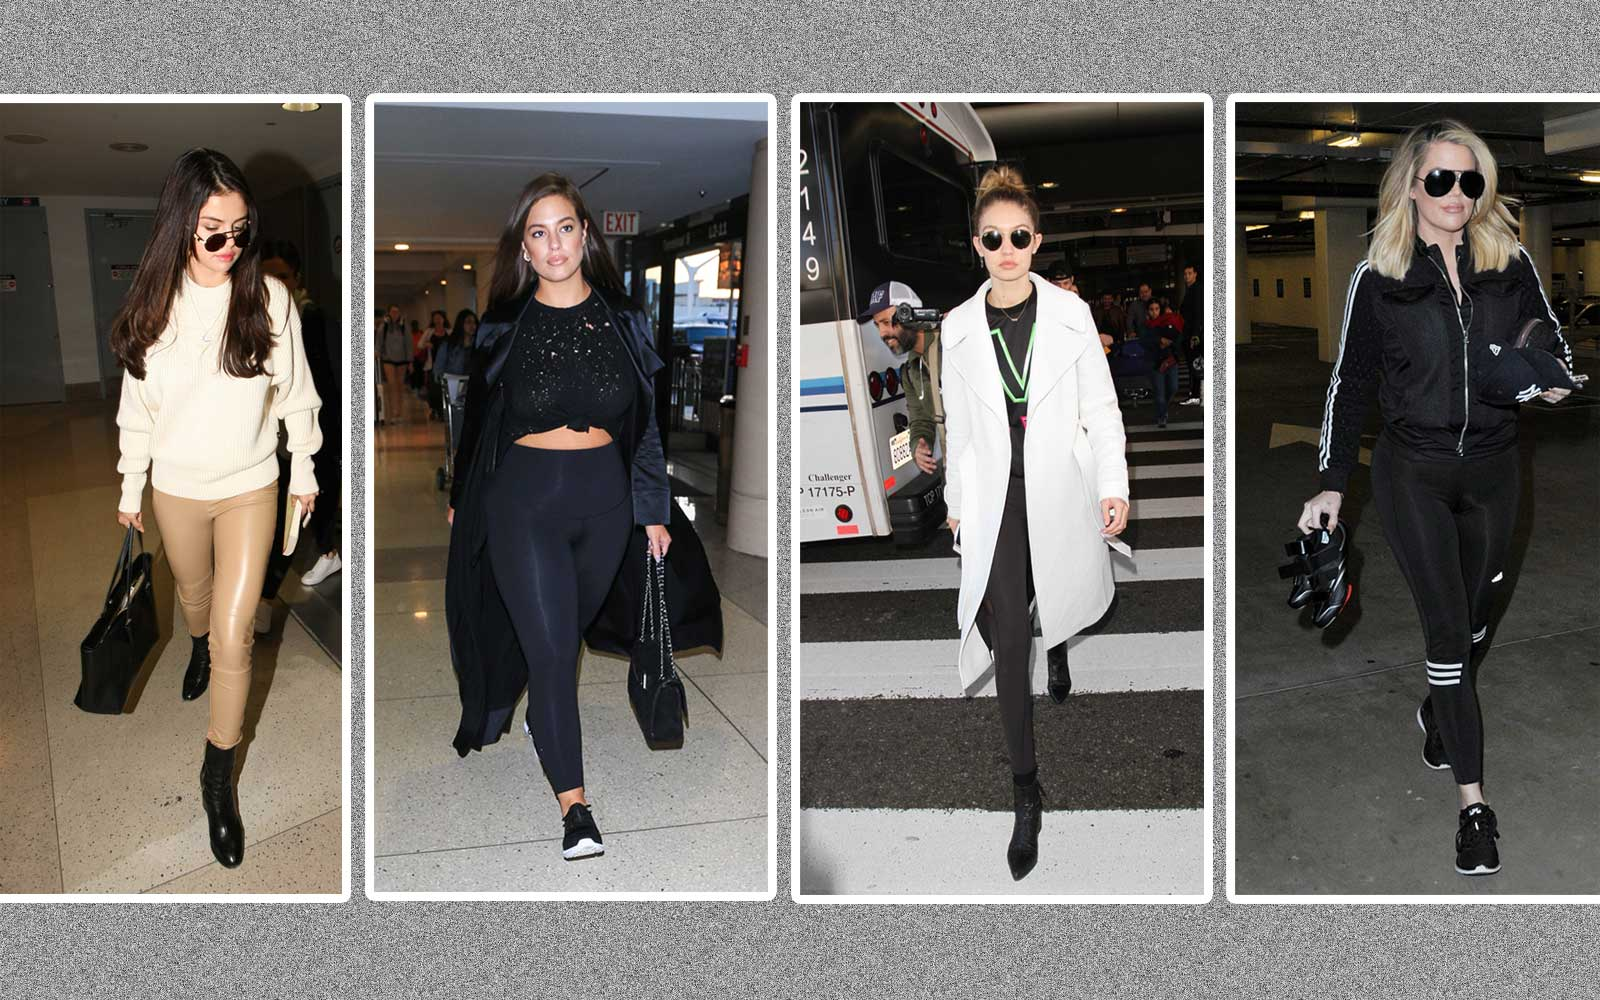 The Leggings Celebrities Love That Are Perfect for Travel